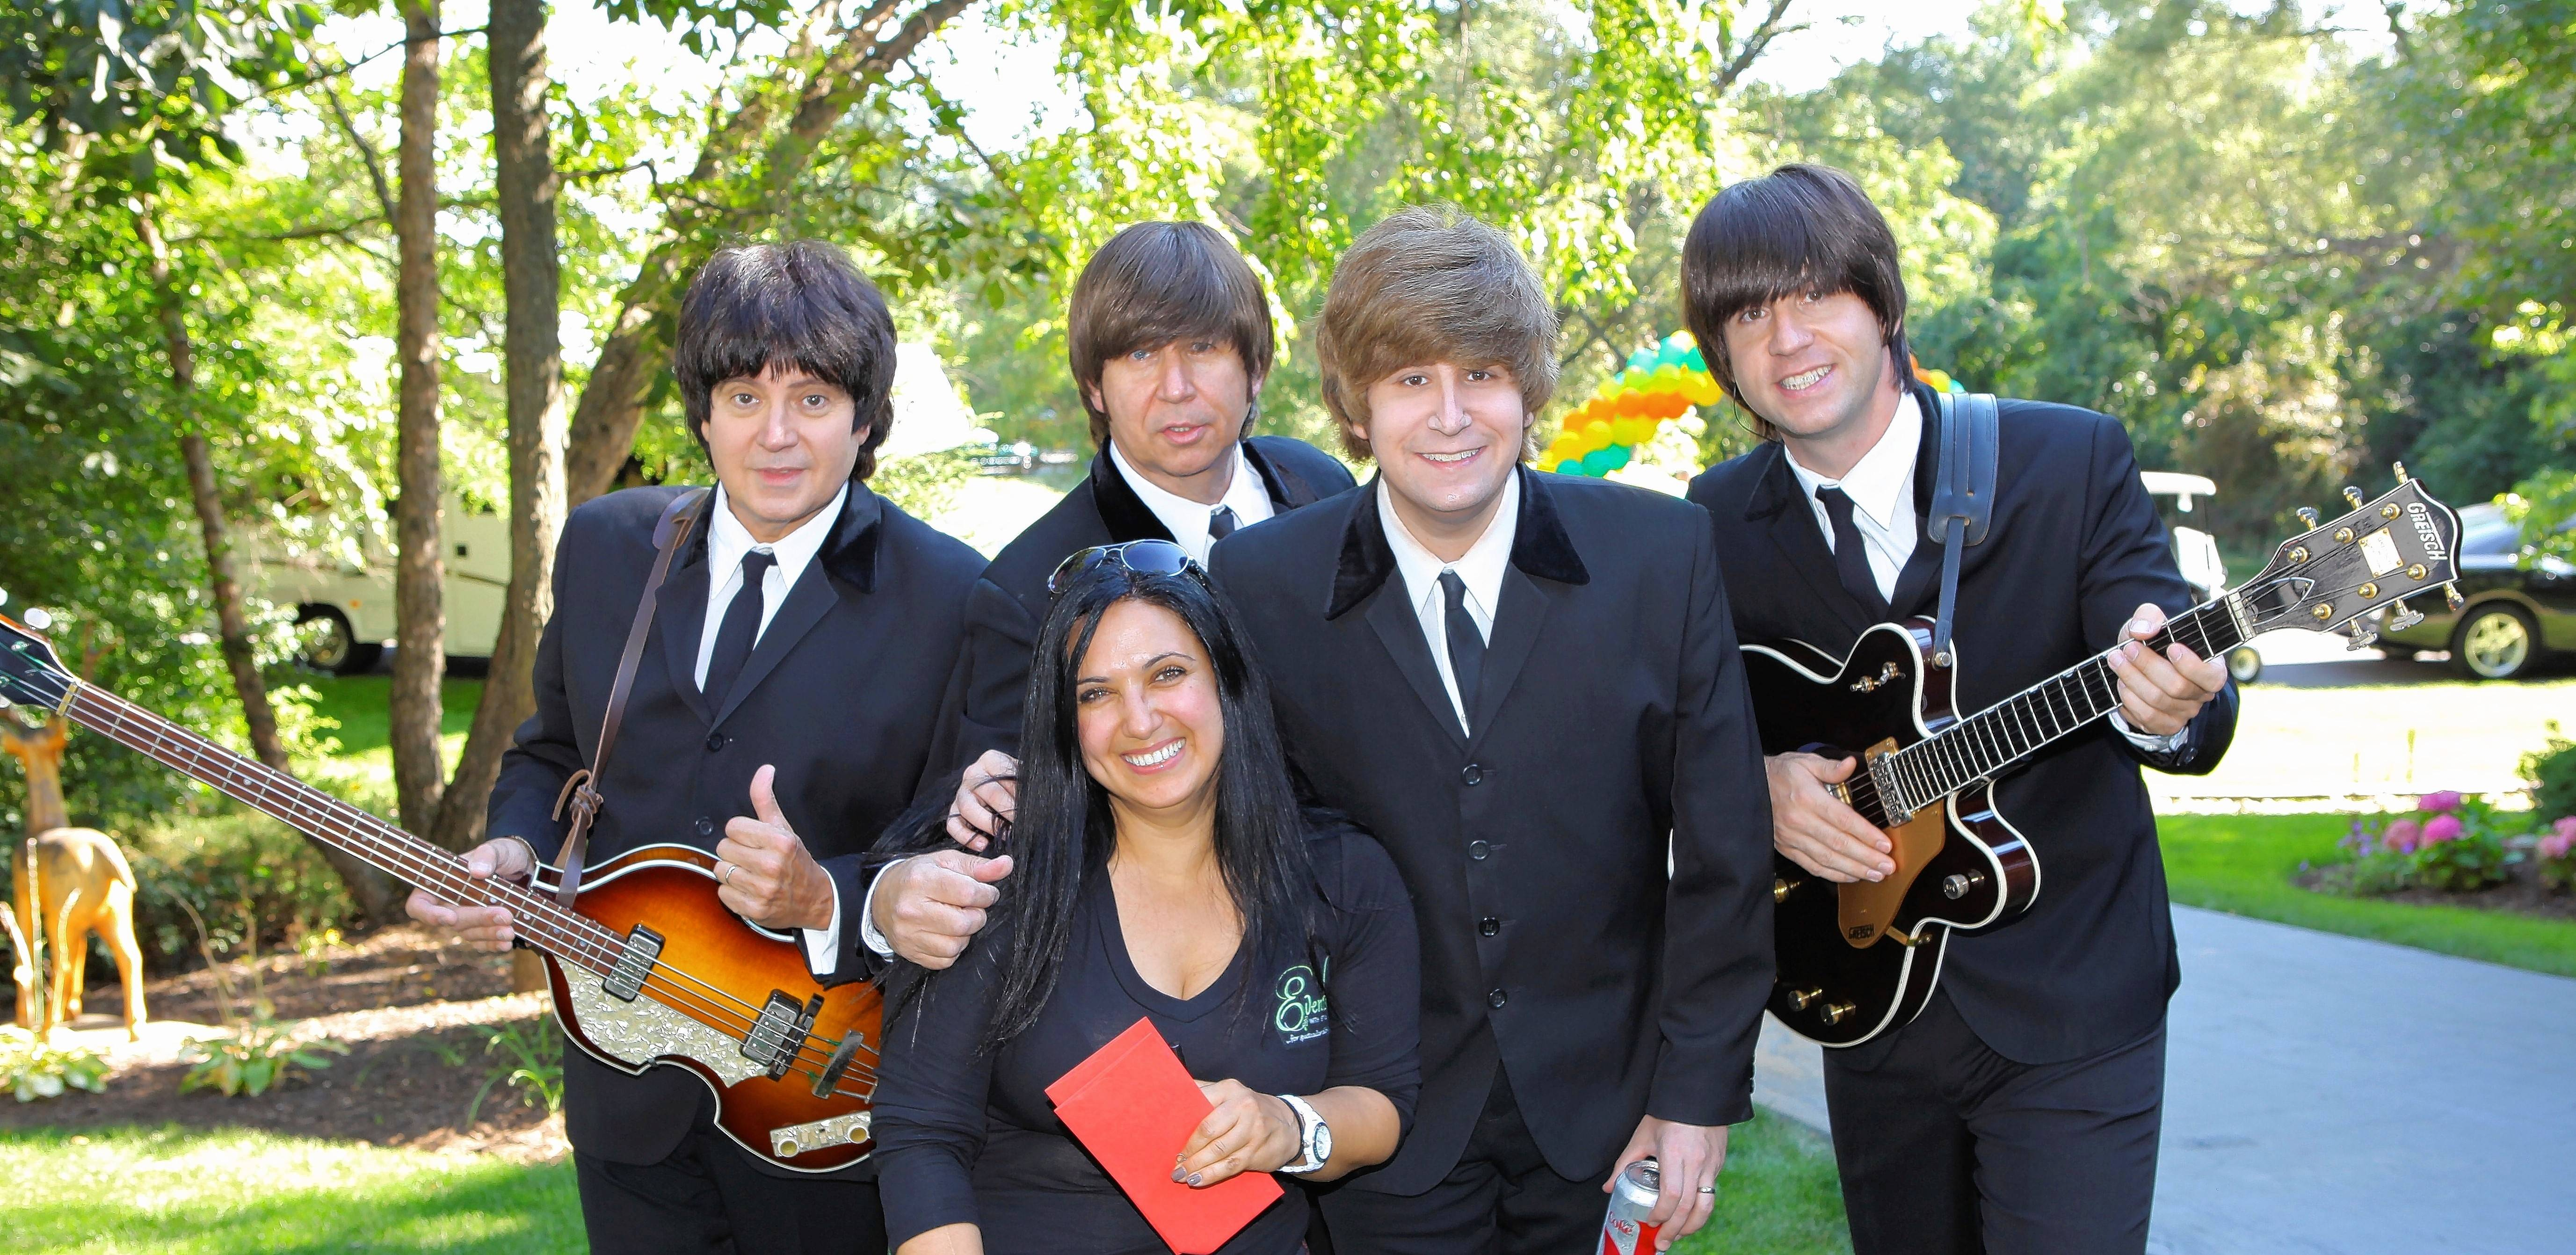 Hanan Hafez, center, poses with the band, American English, during a 2013 event with 135 people in Deer Park.